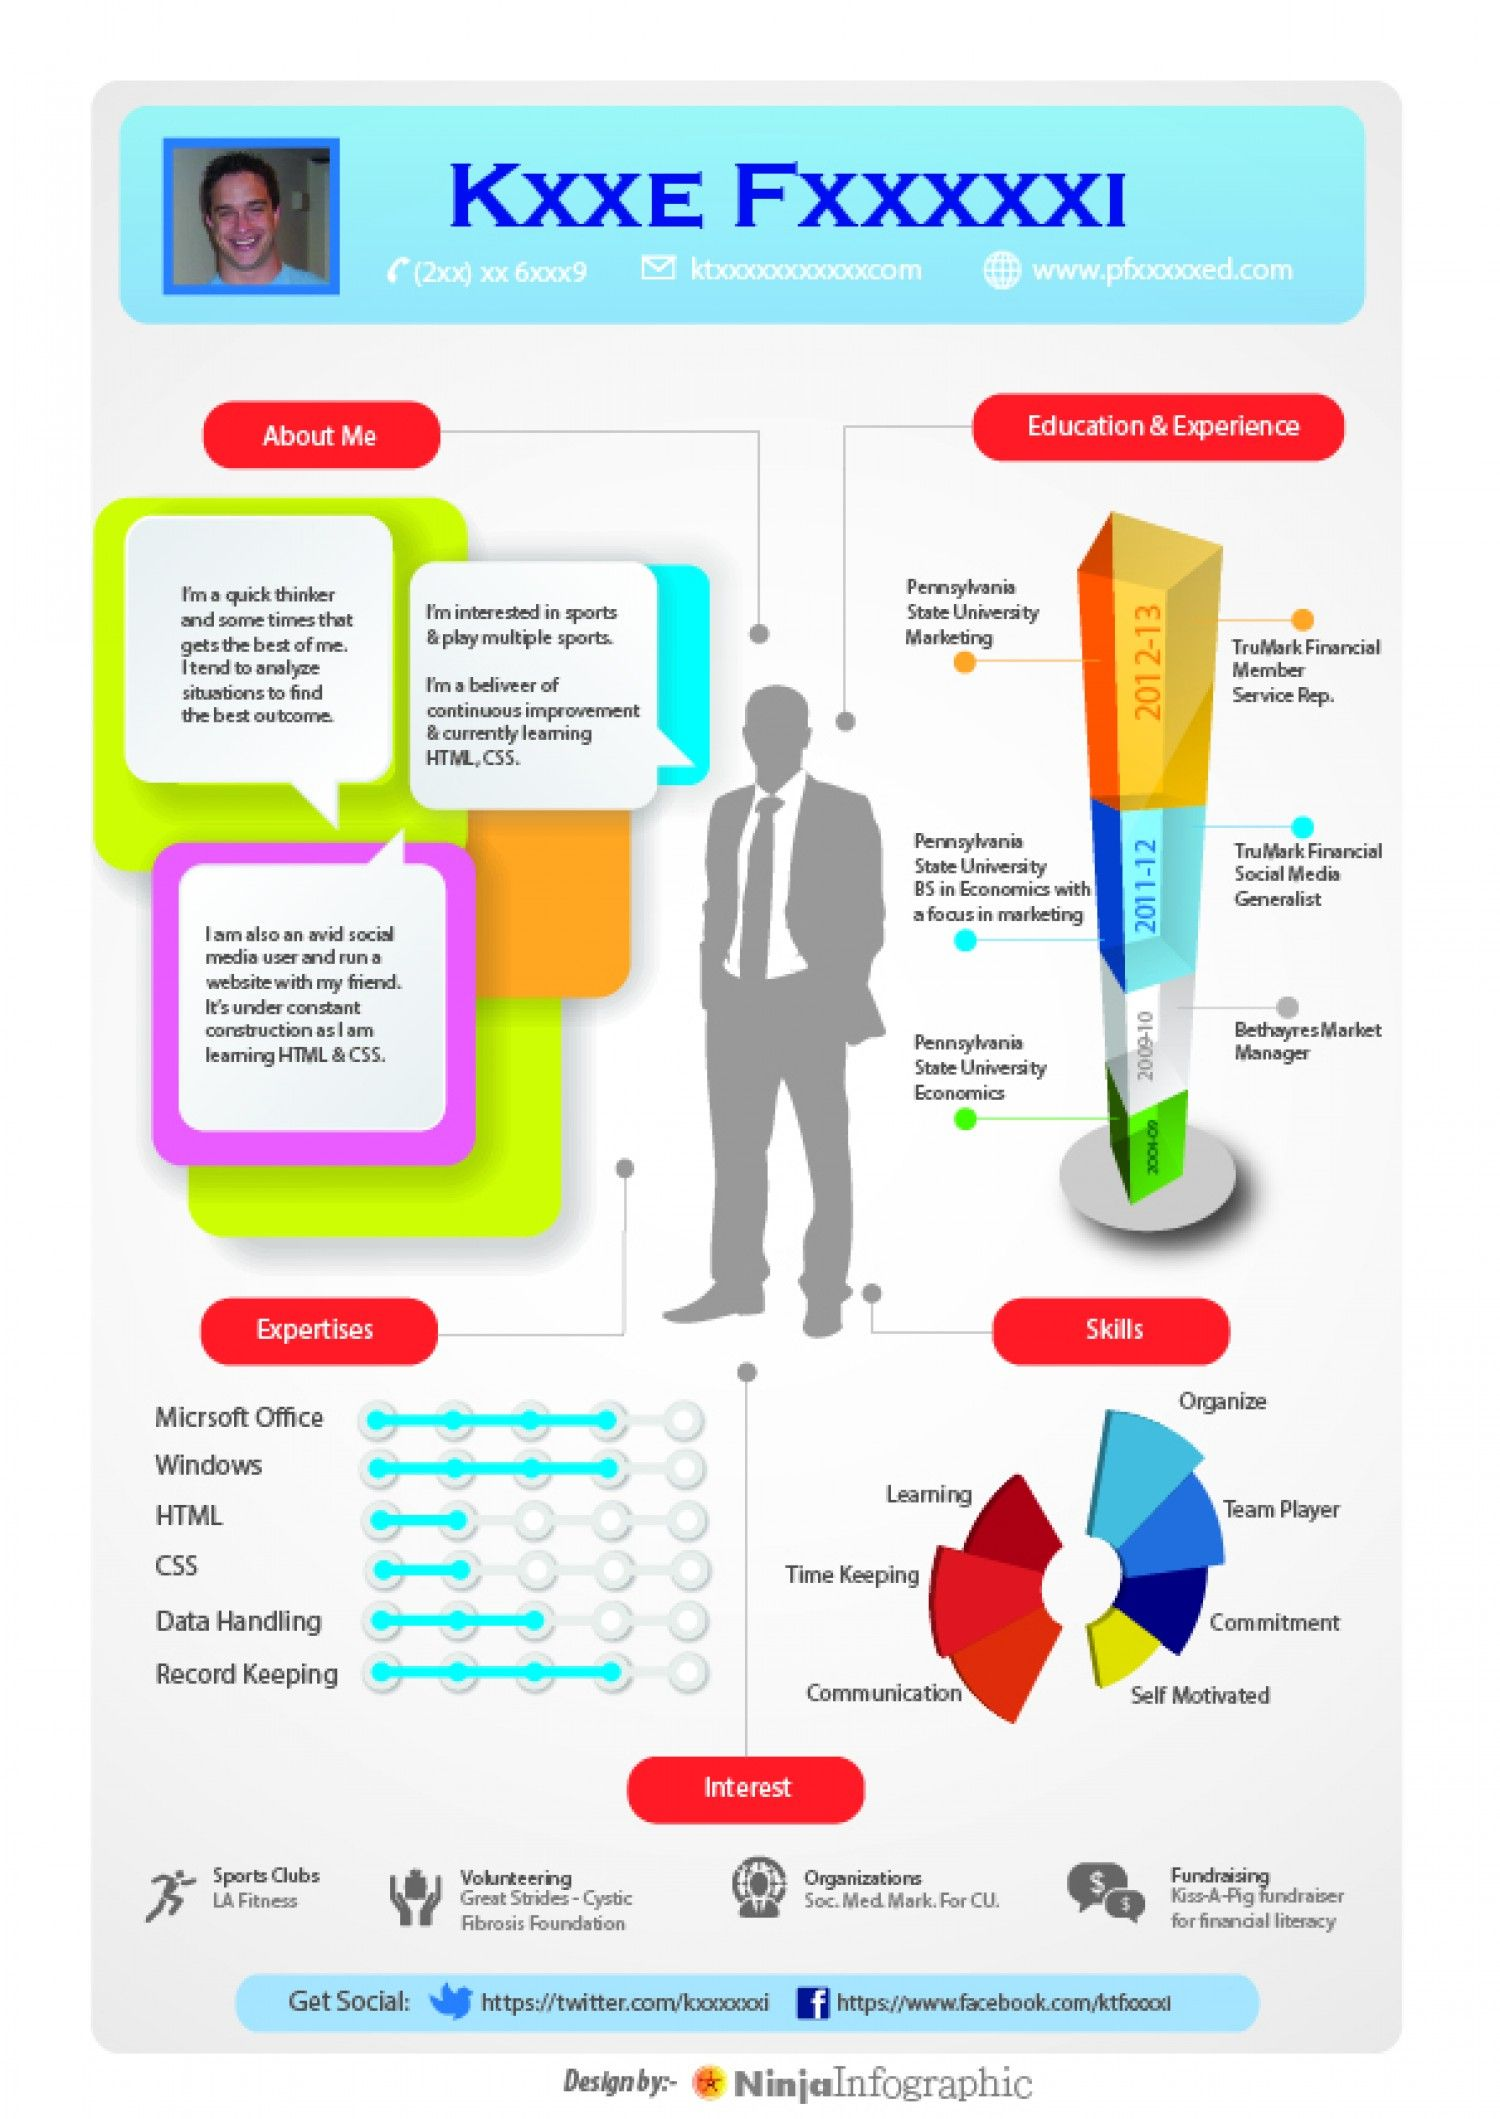 Infographic Resume Kxxe Fxxxxxi  Information Design  Pinterest  Infographic